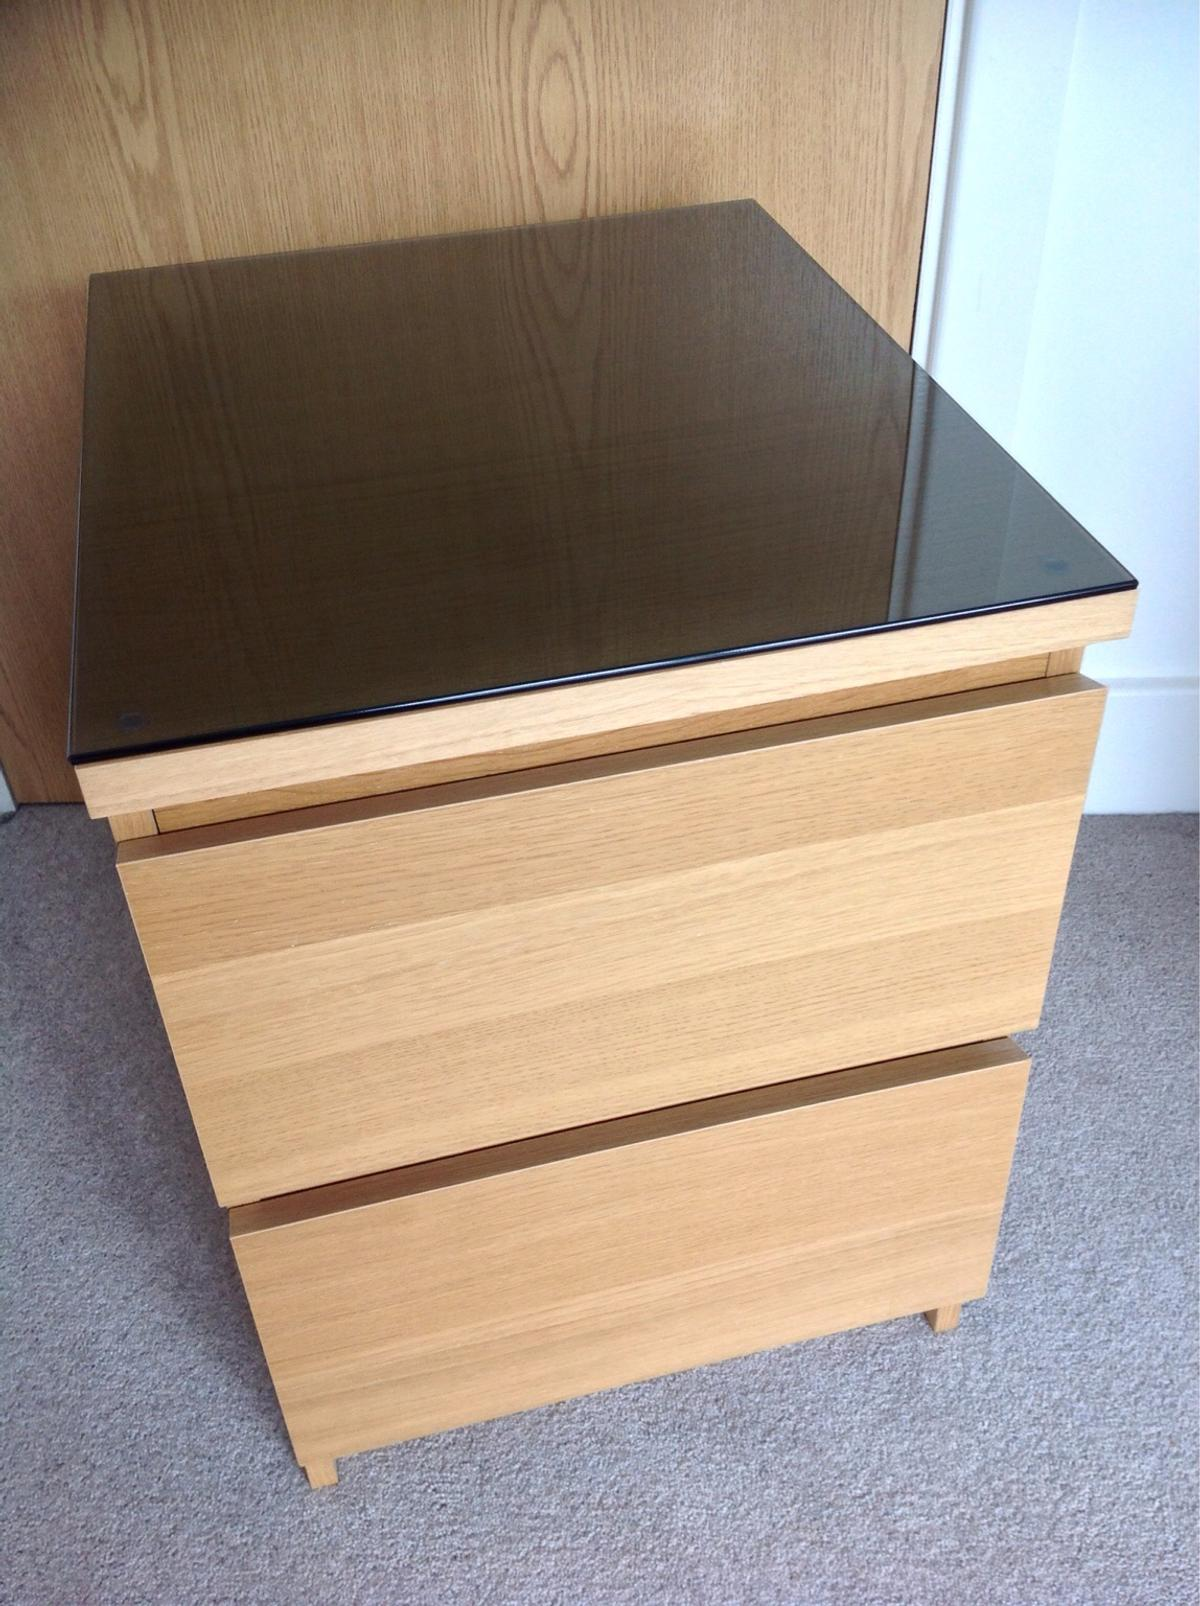 Ikea Malm 2 Drawer Bedside Unit Glass Top In Cf64 Penarth For 18 00 For Sale Shpock